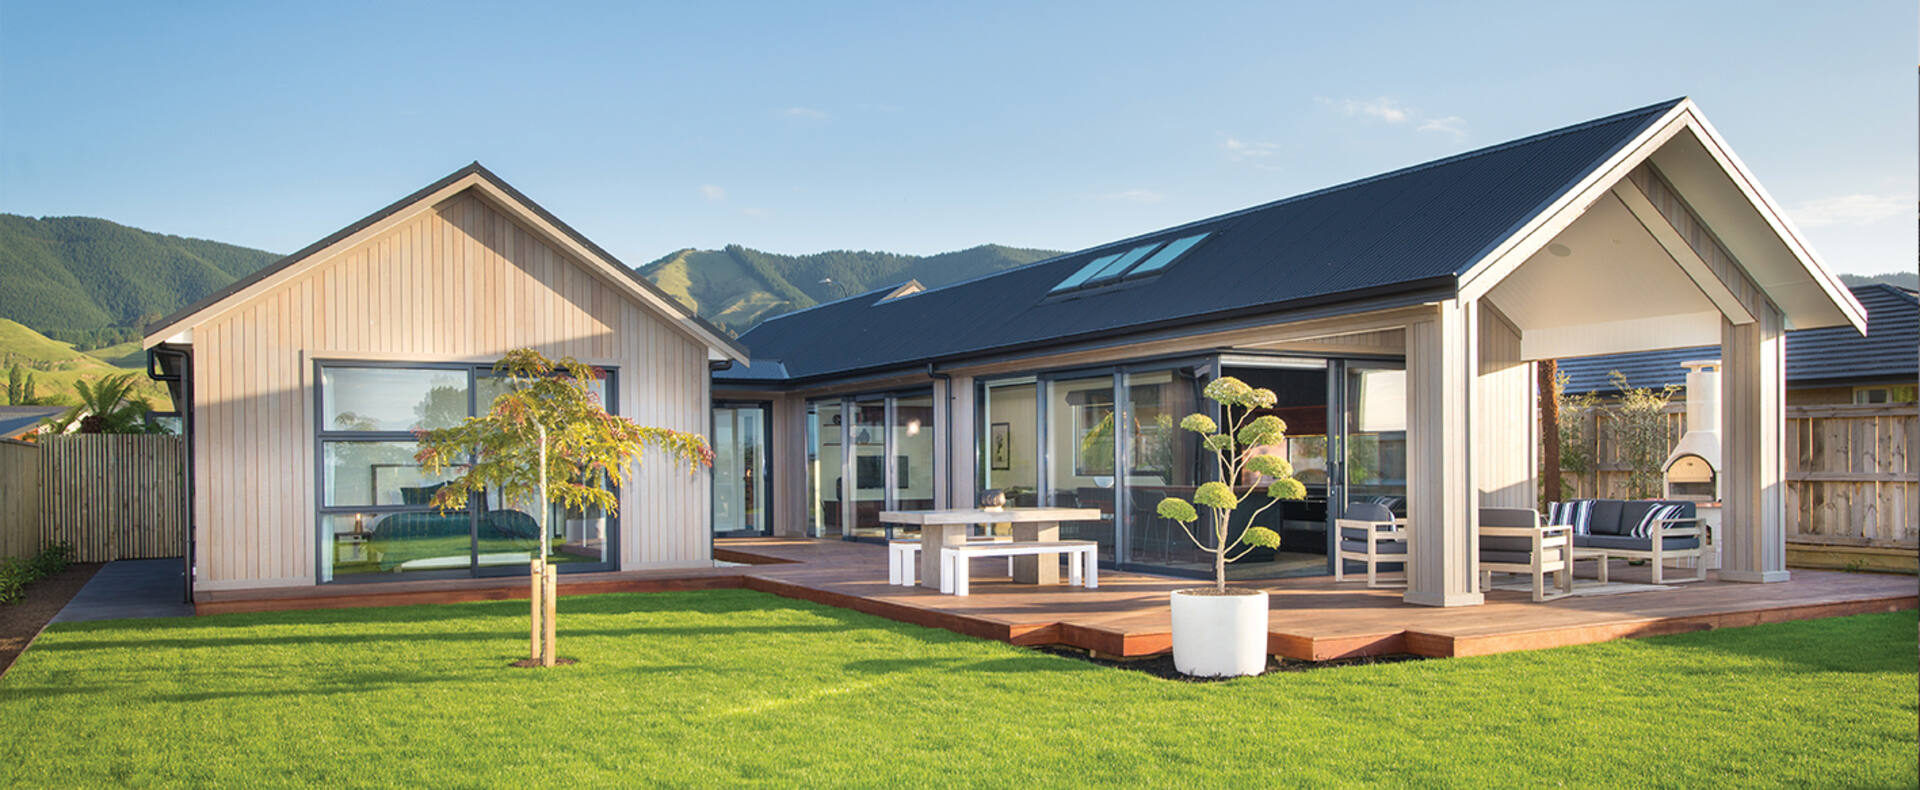 Design & Build your dream with Signature Homes